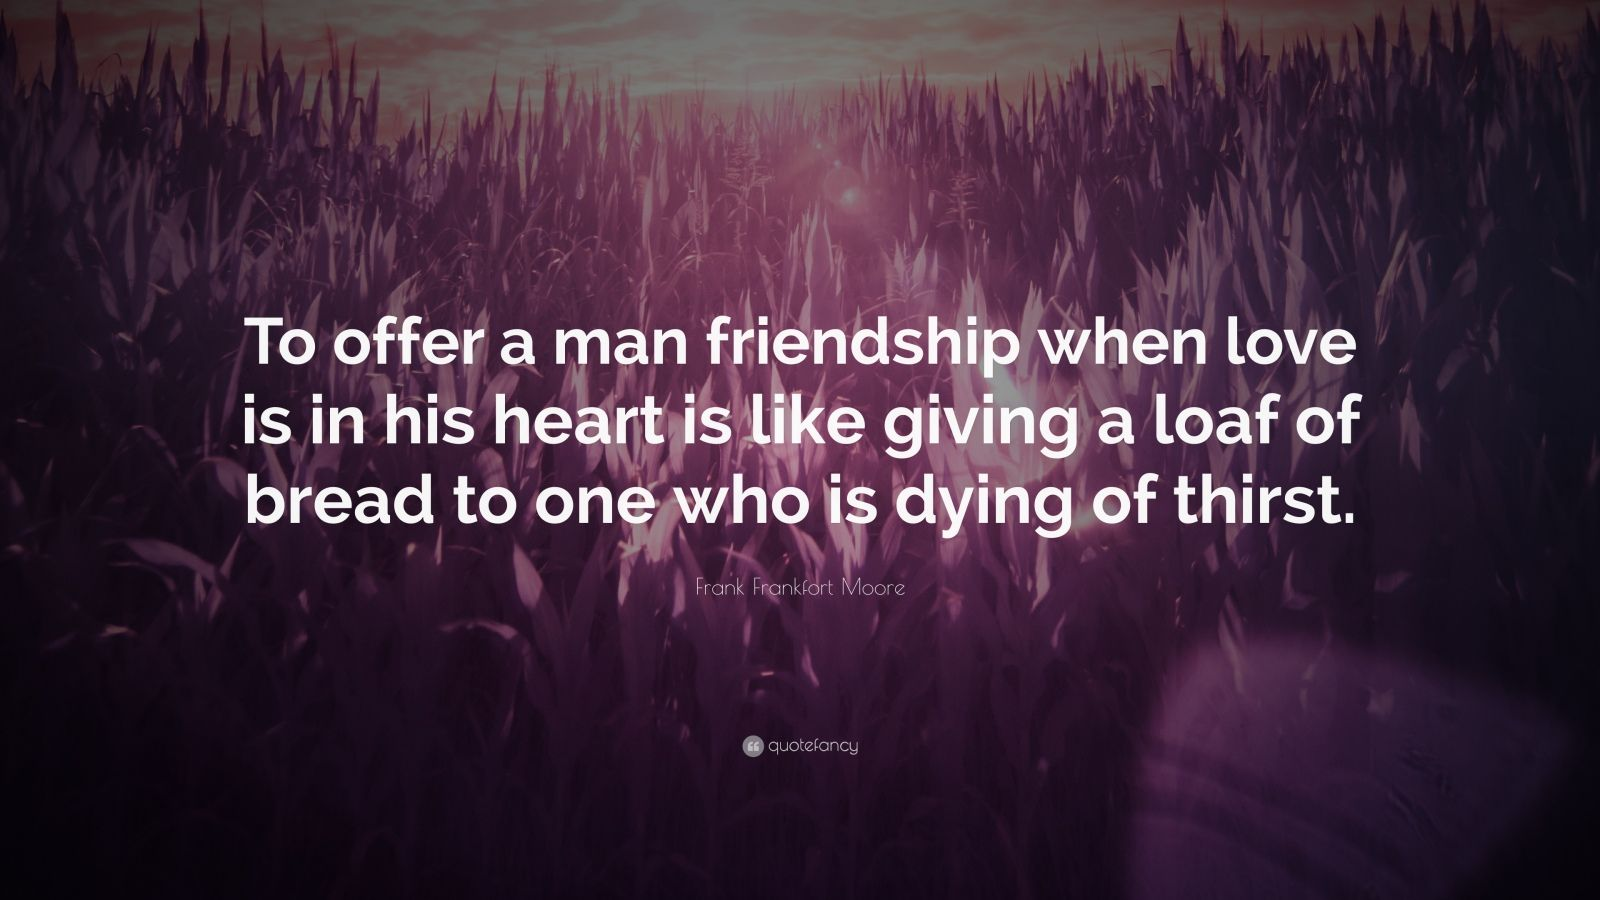 """Frank Frankfort Moore Quote: """"To offer a man friendship when love is in his heart is like giving a loaf of bread to one who is dying of thirst."""""""